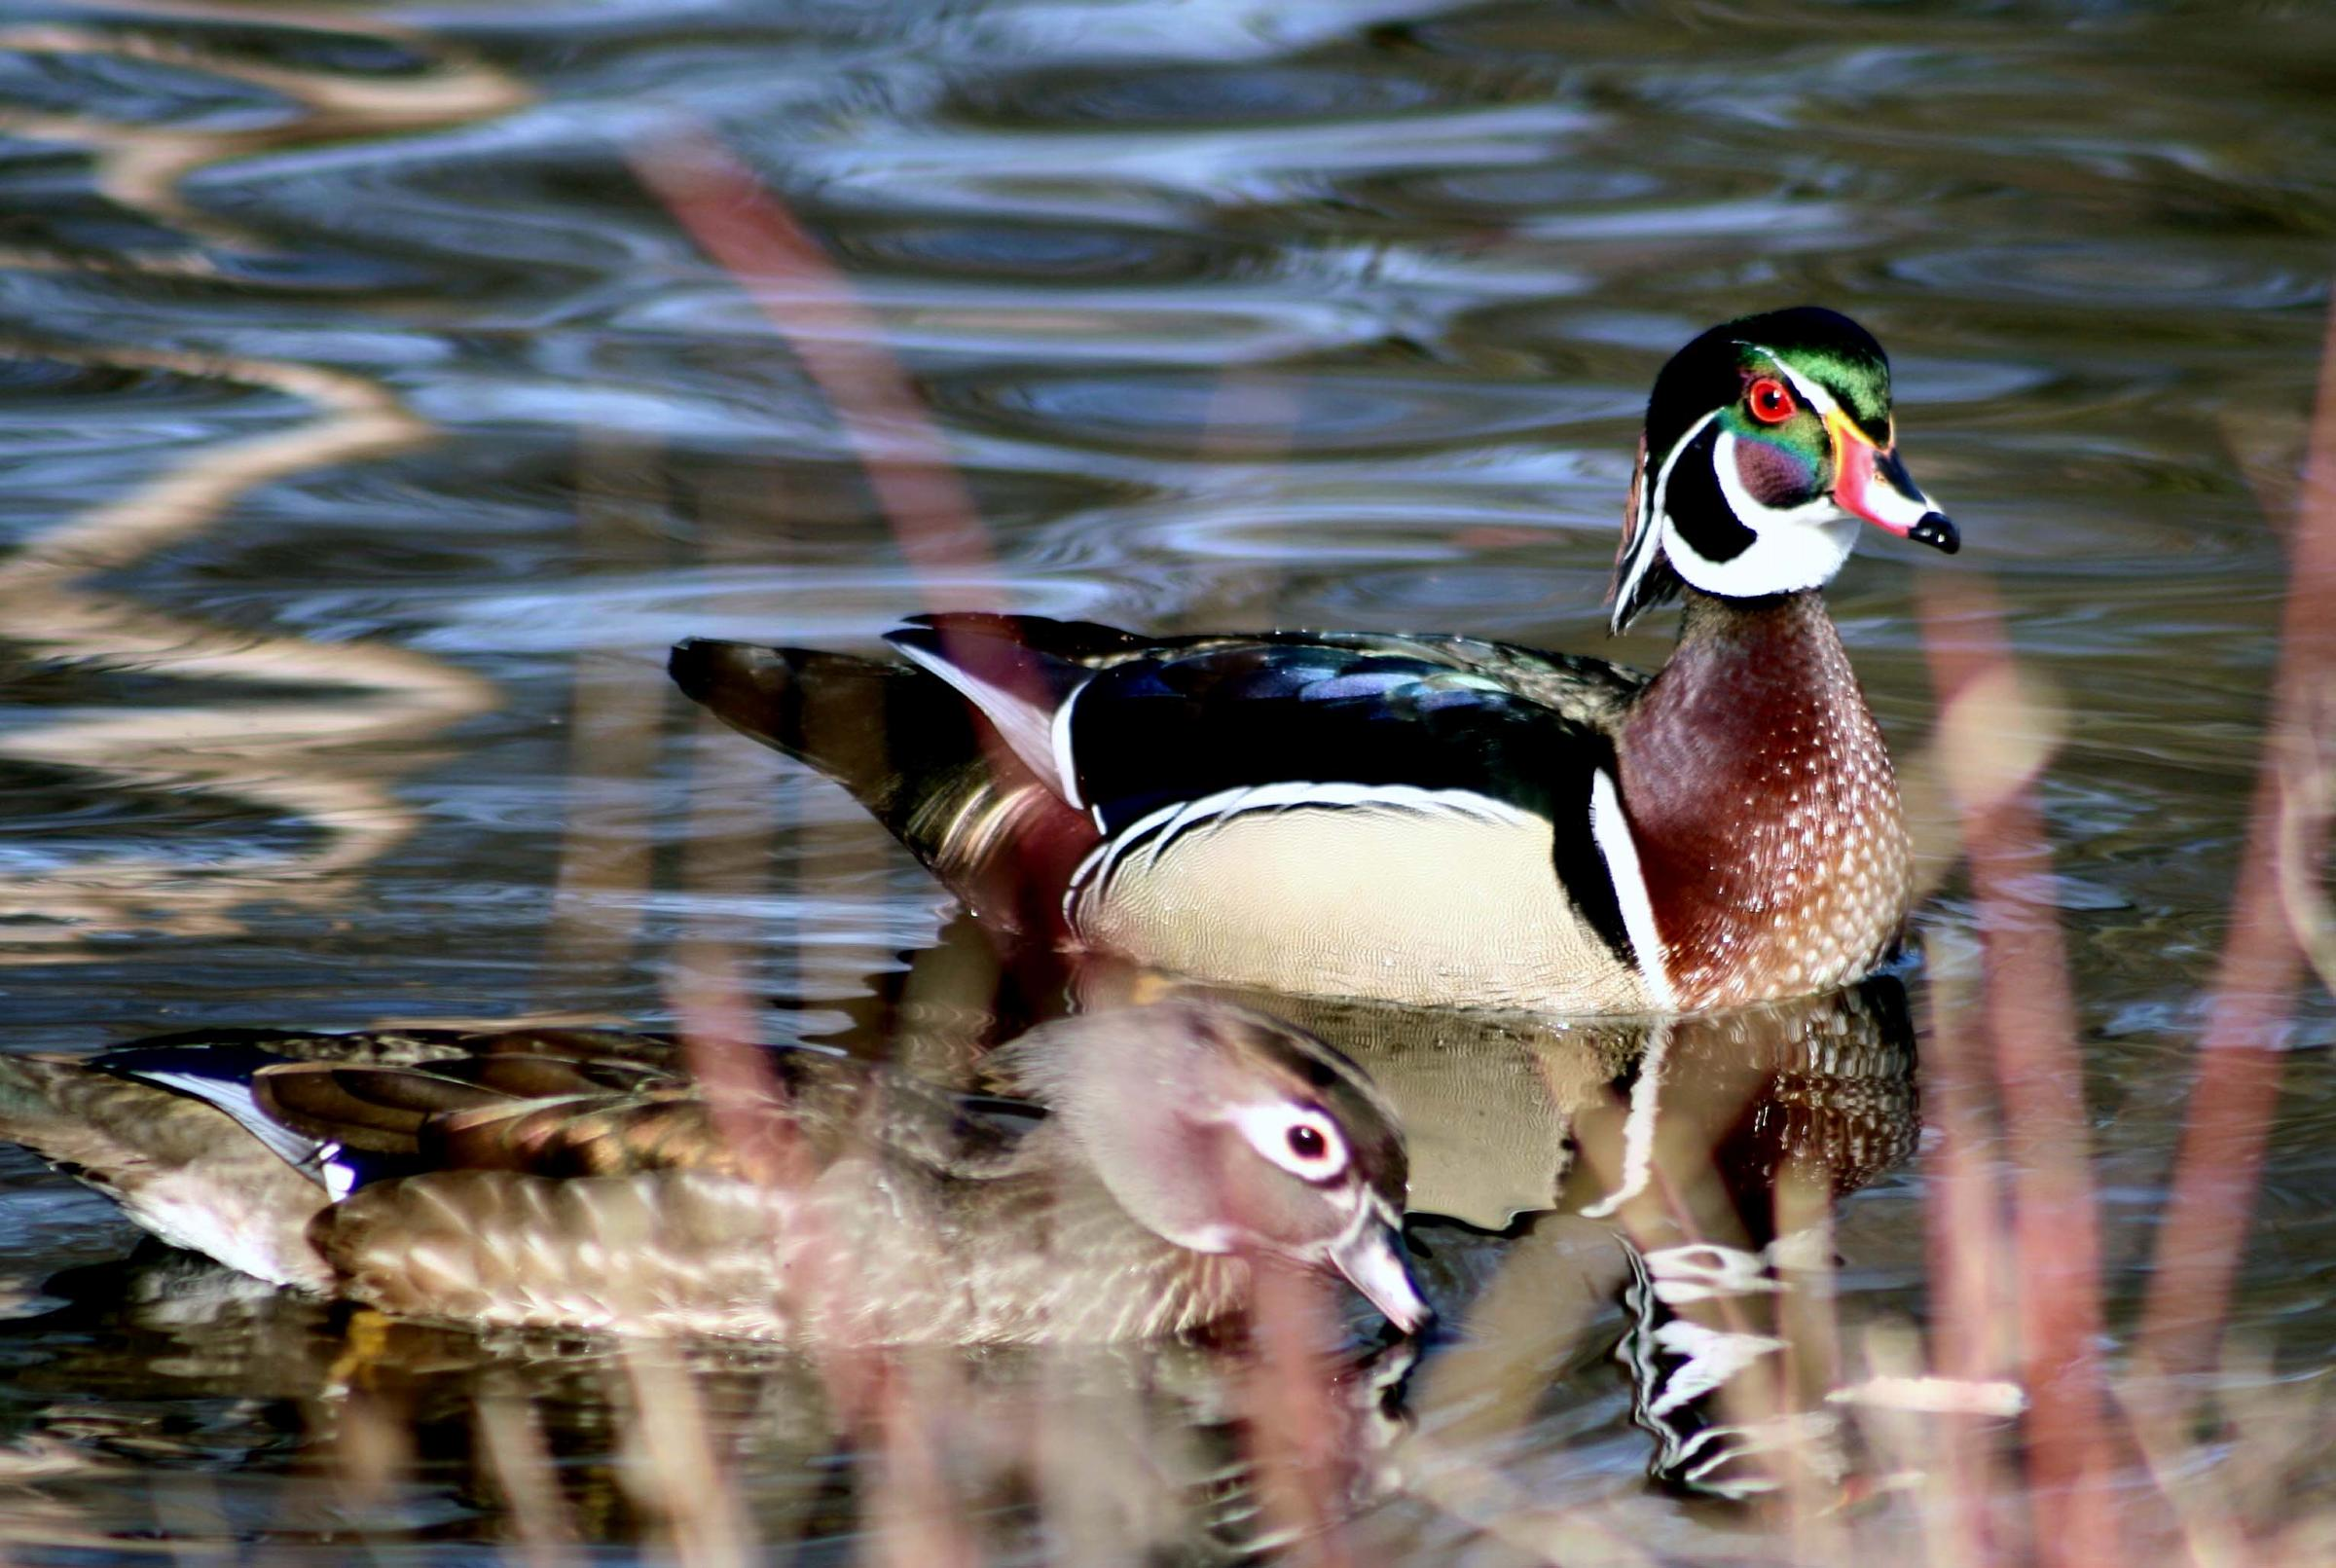 Woodducks - Photo by Larry Trupp